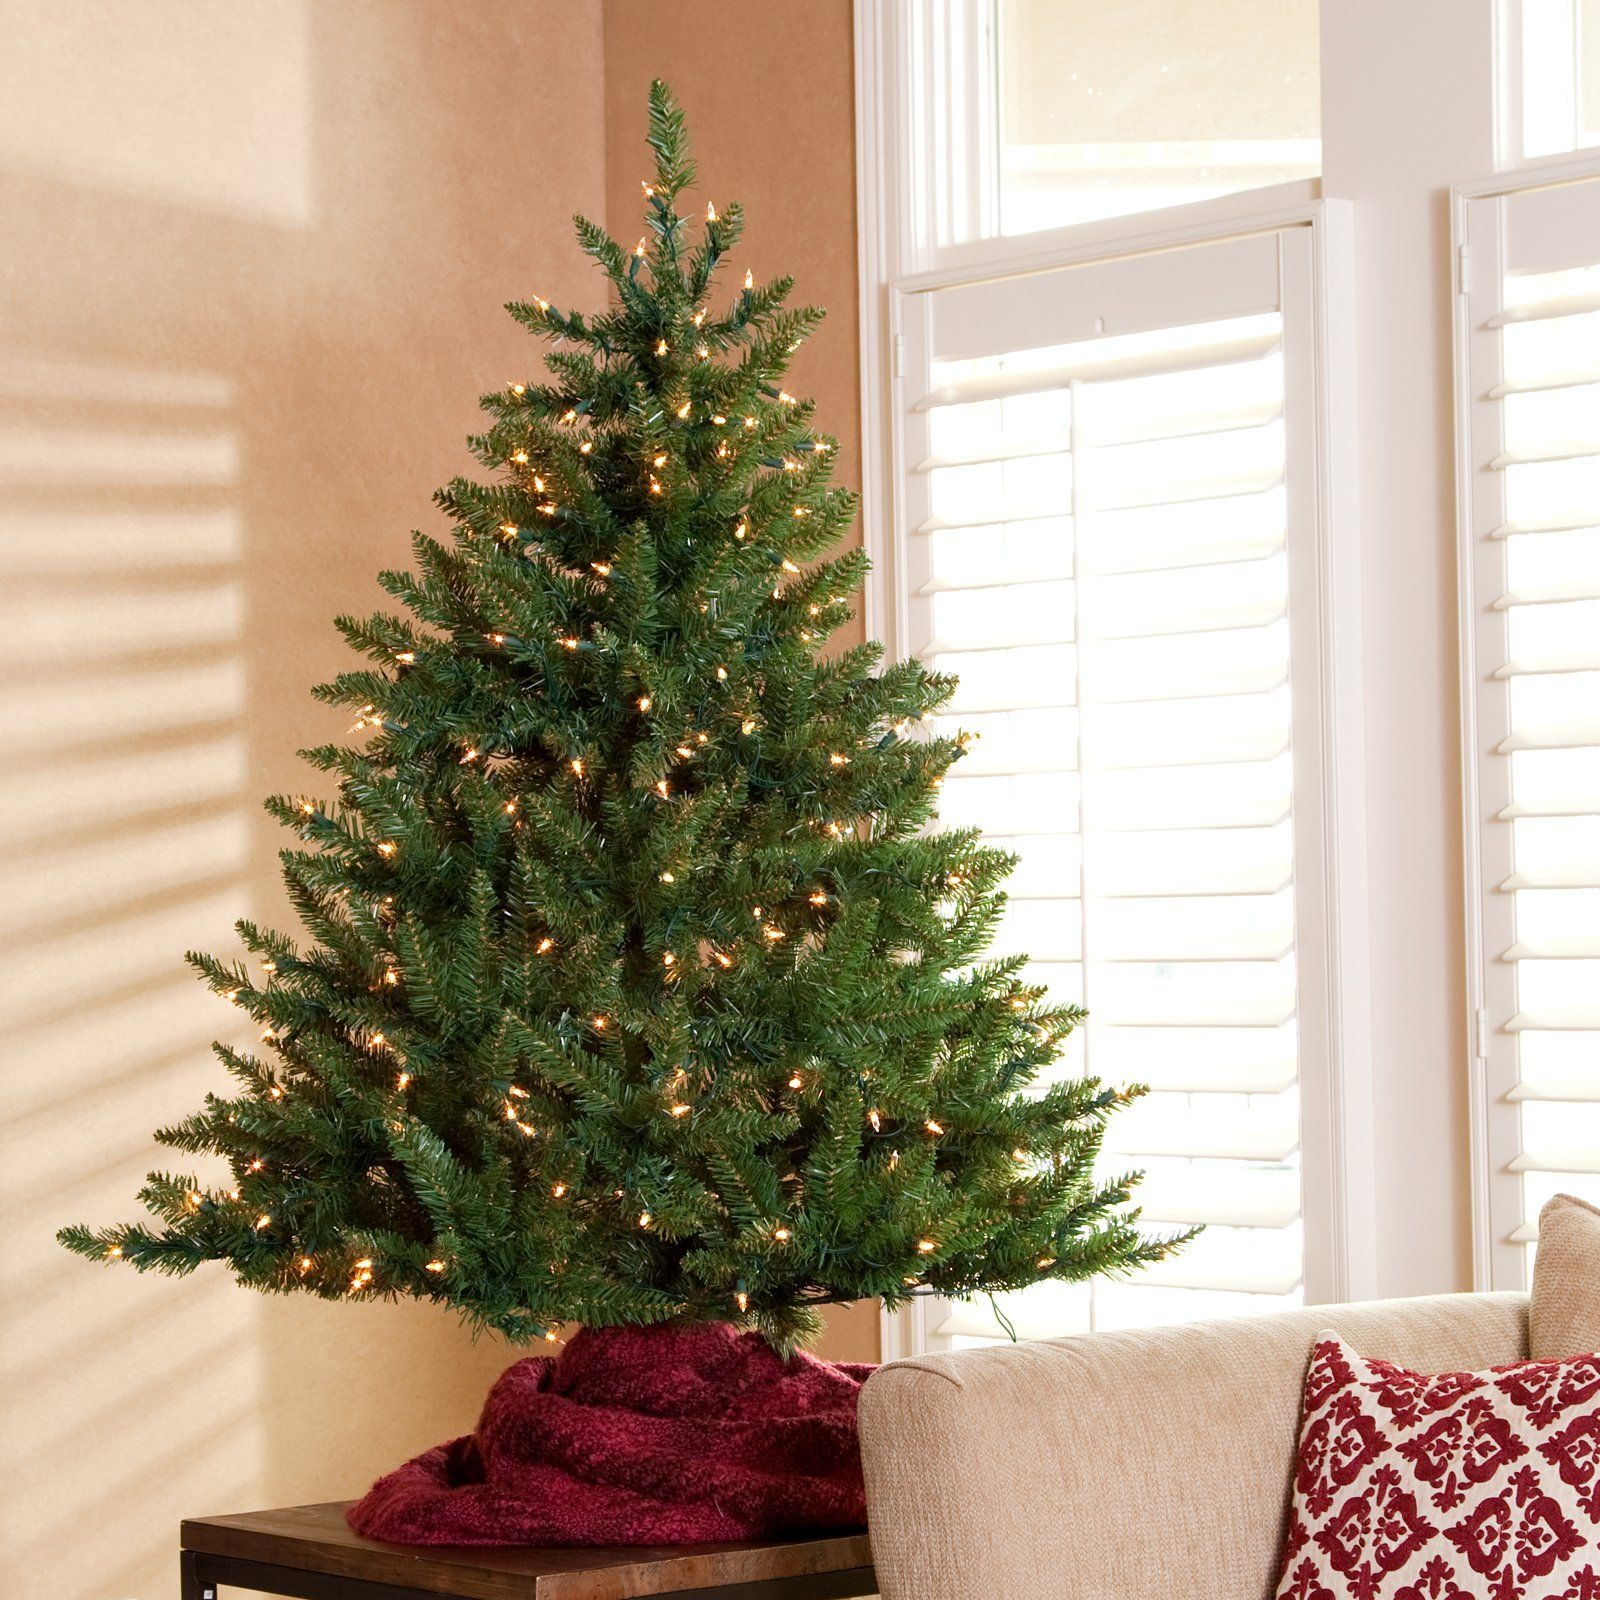 Classic Tabletop Pre-lit Christmas Tree -4.5 ft. - The Classic ...